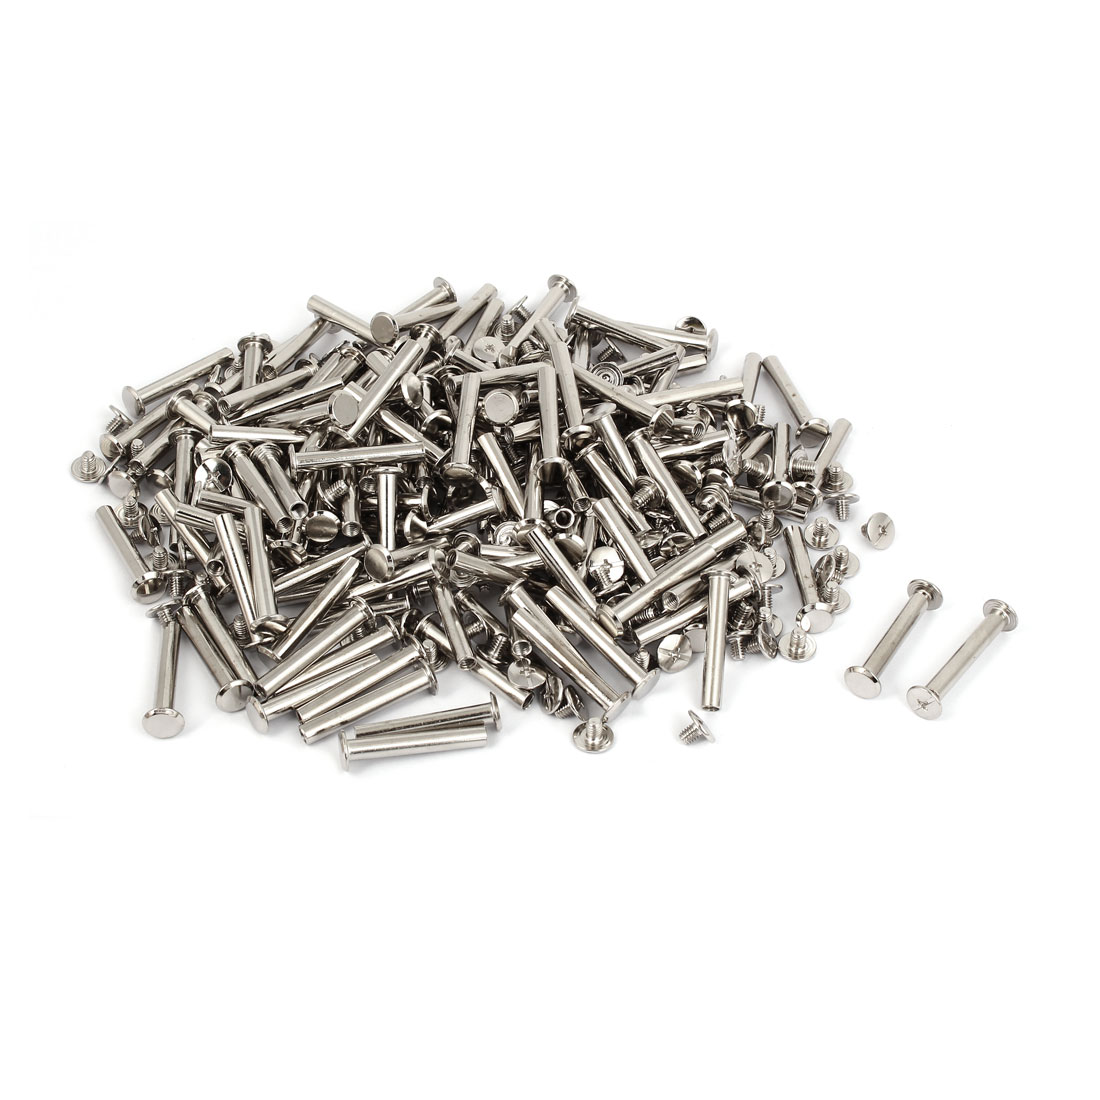 M5x32mm Binding Chicago Screw Post 200pcs for Photo Albums Scrapbook